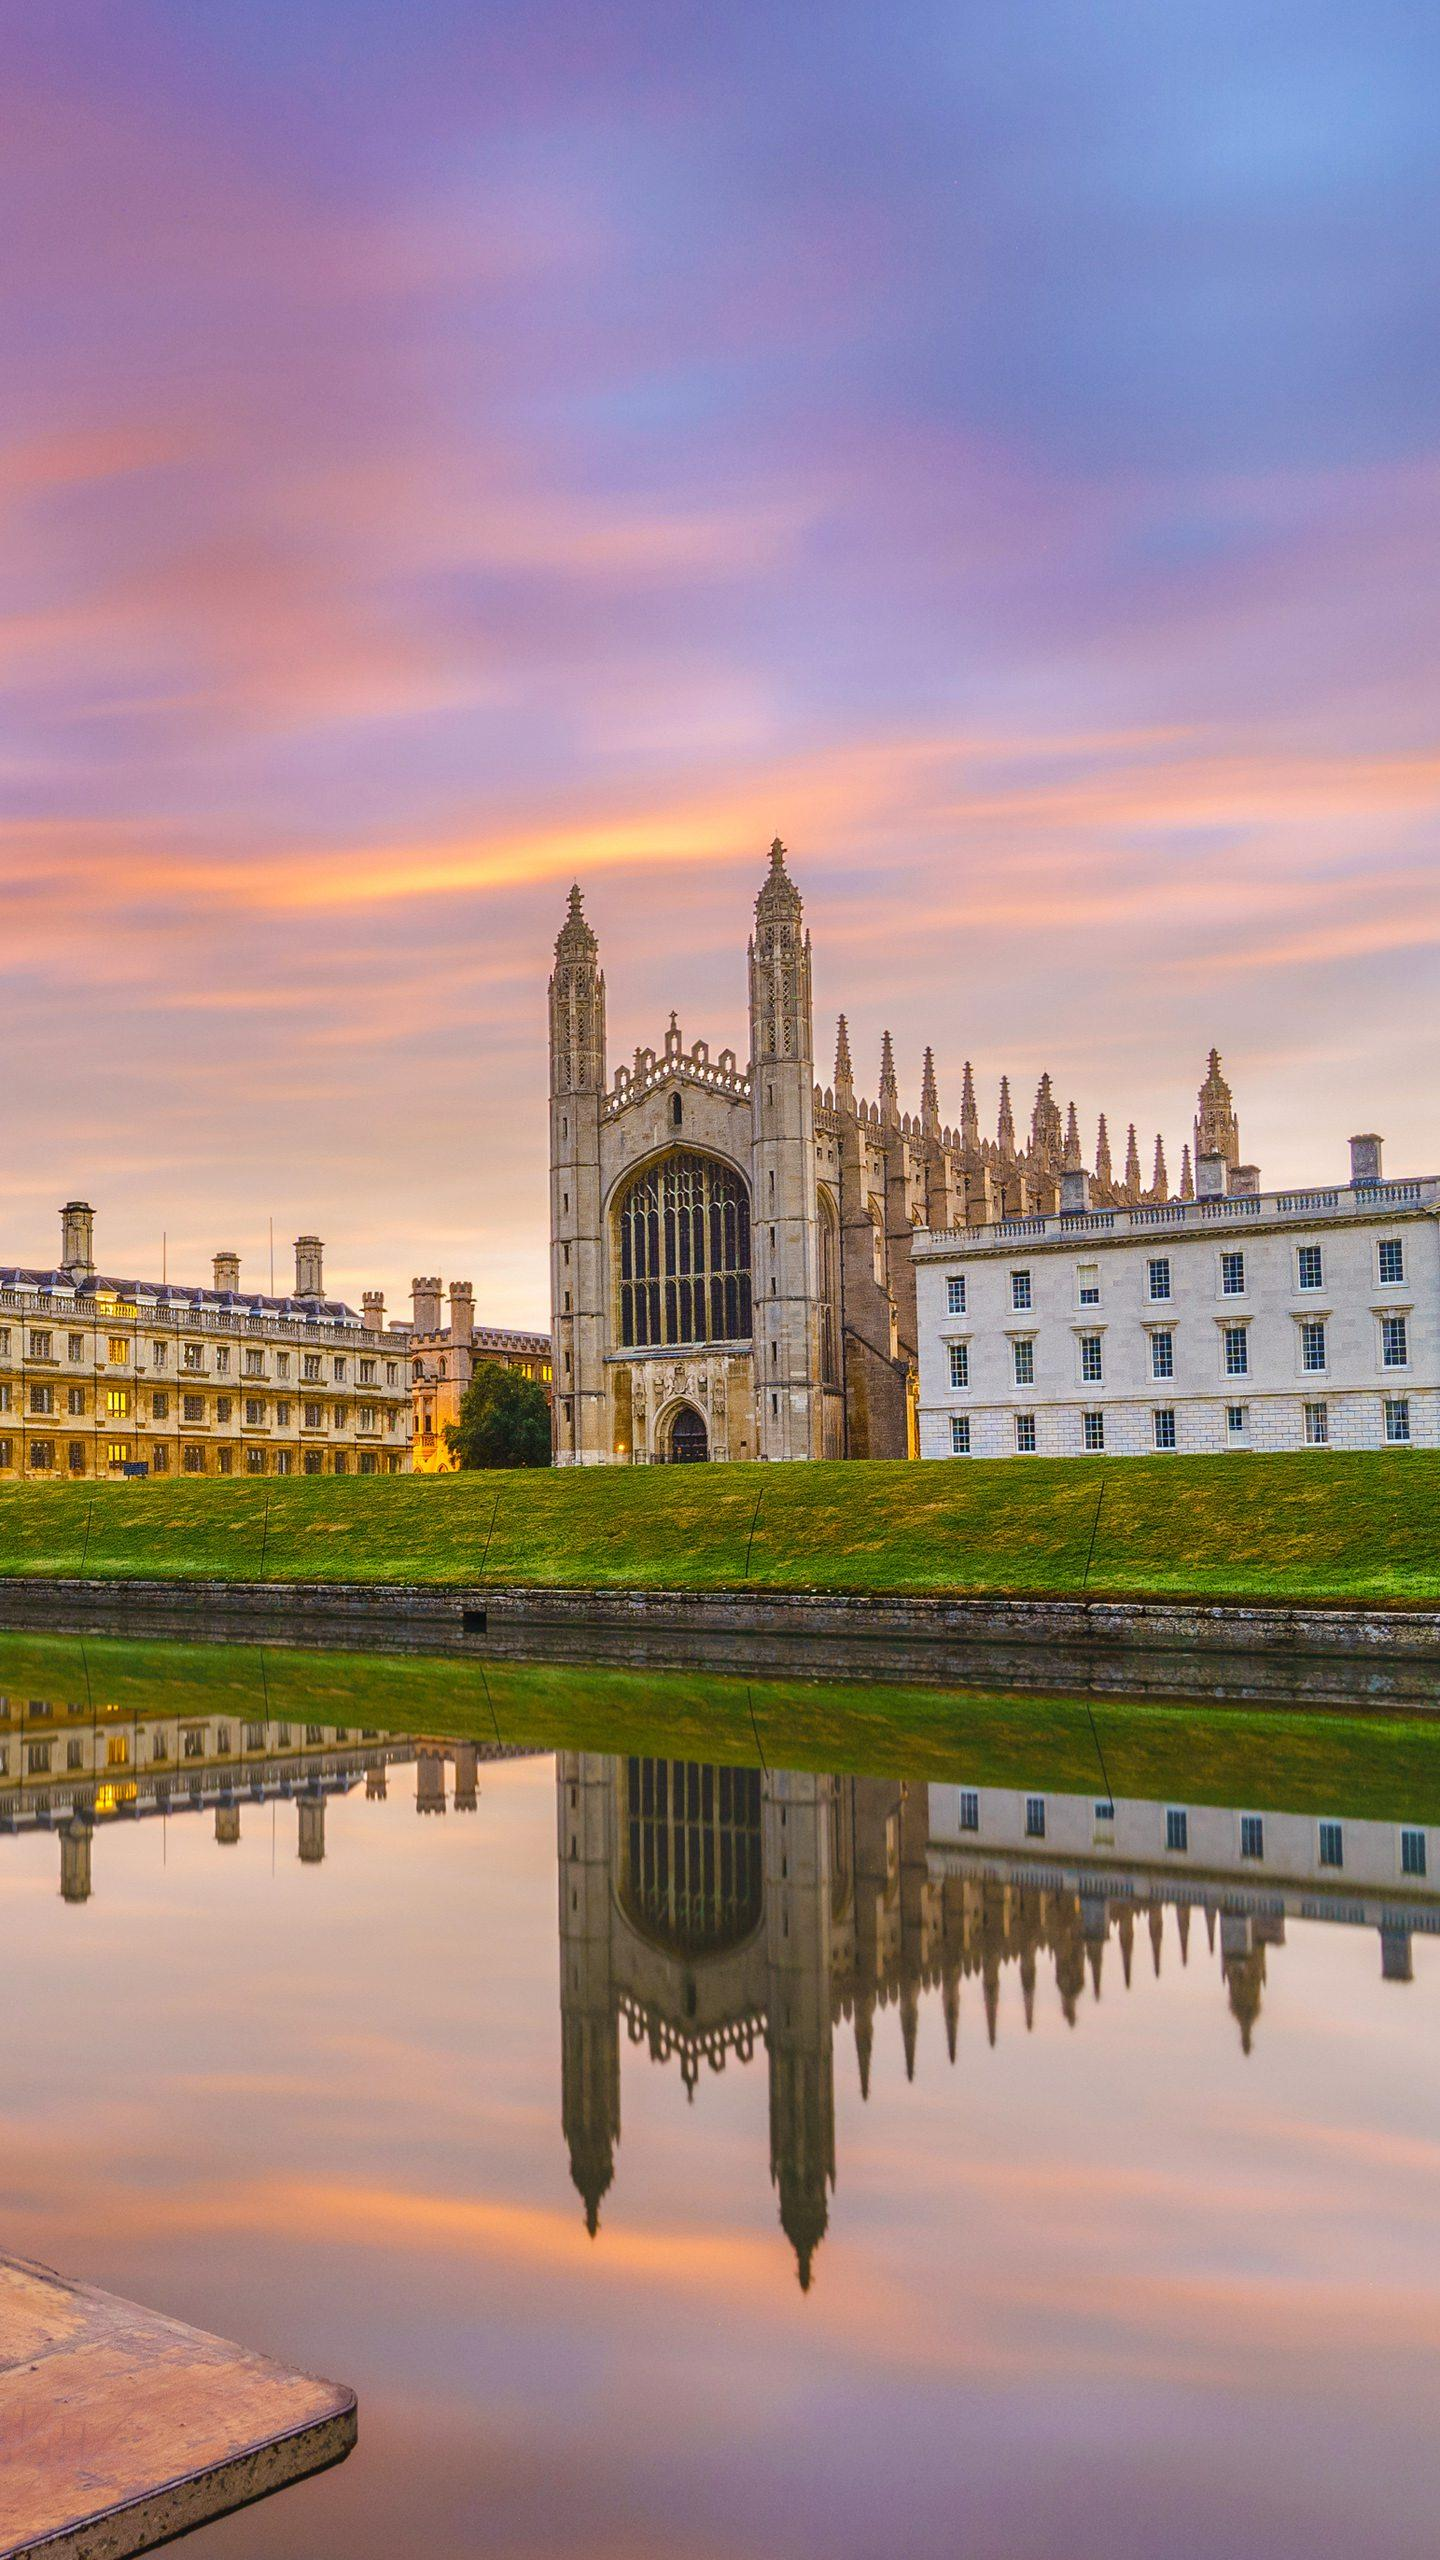 United Kingdom - Cambridge. A fascinating university town, preserved with many medieval buildings, exudes a strong literary atmosphere.